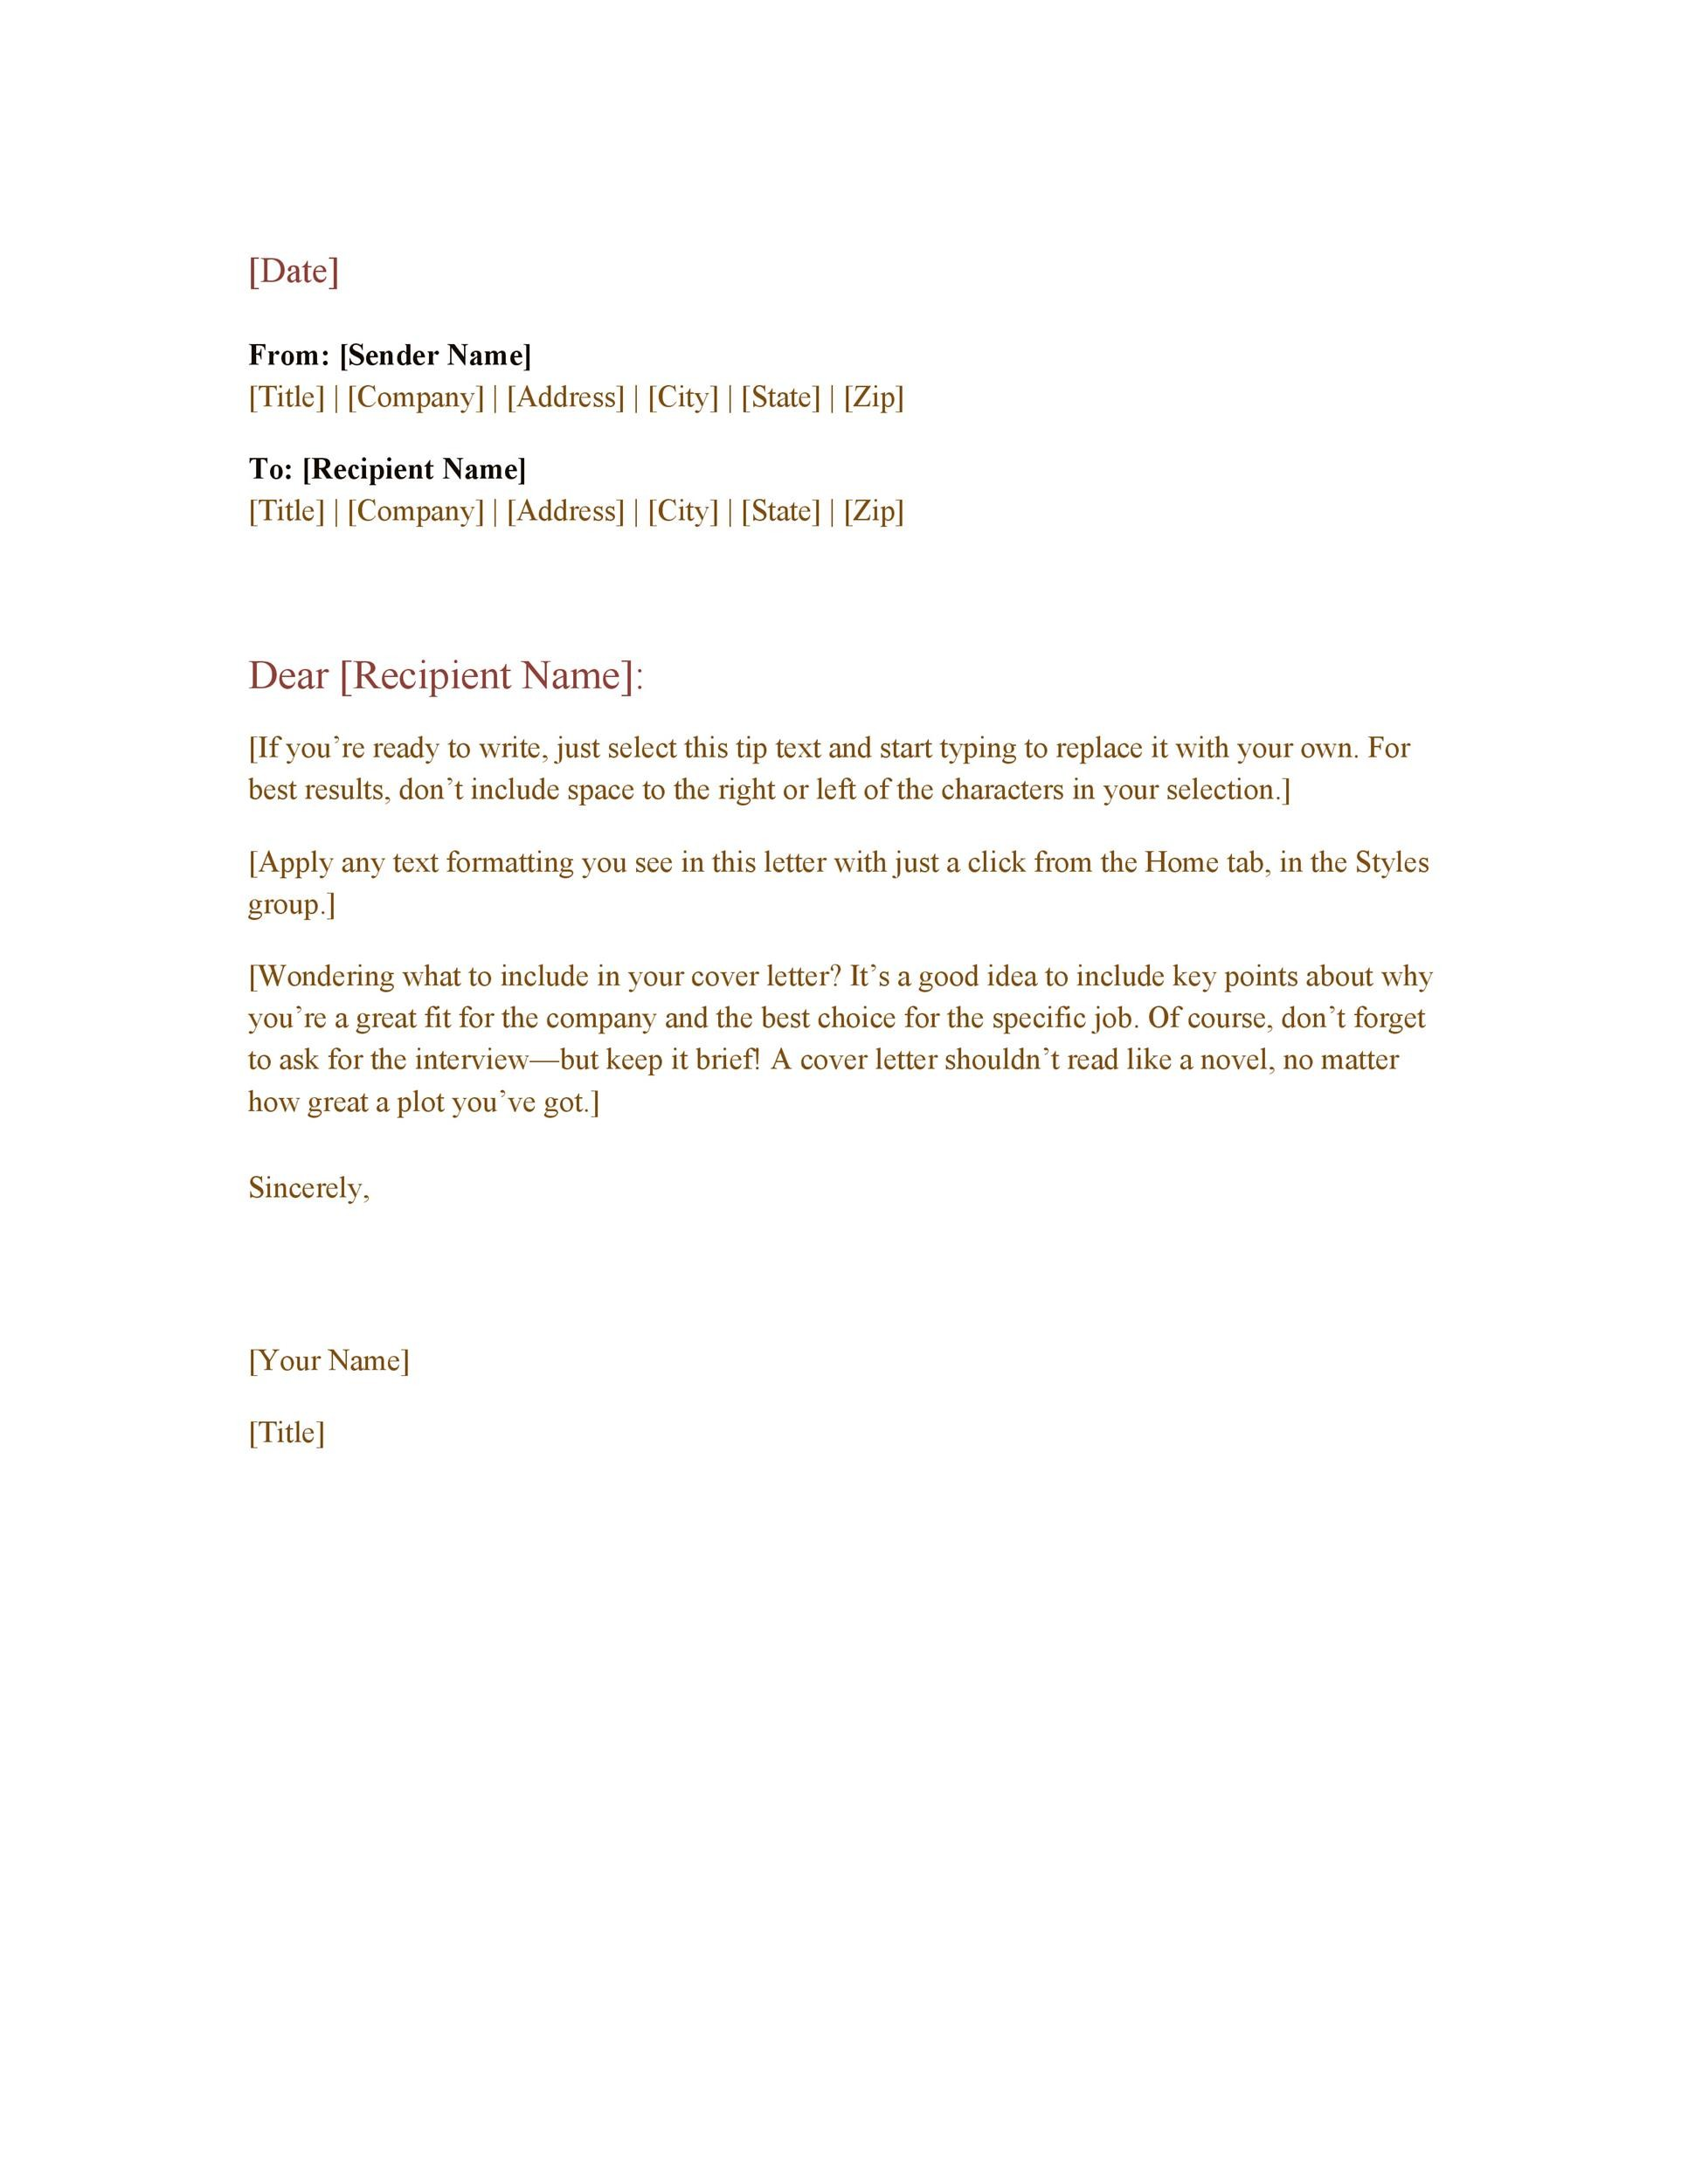 free professional email example 06 - 40 What Is The Proper Format For A Business Letter Practical